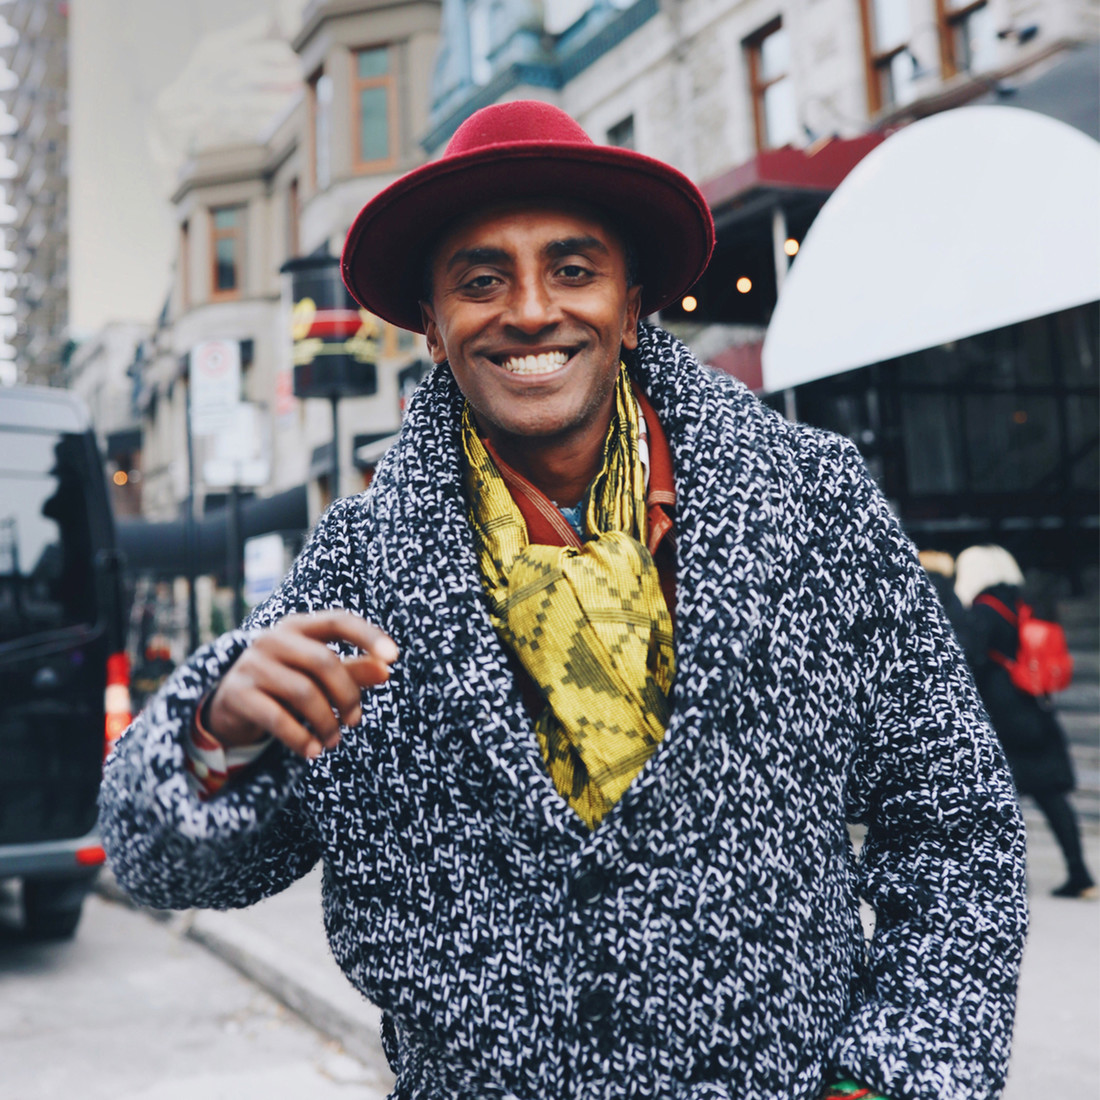 Marcus Samuelsson on the streets of Harlem in New York